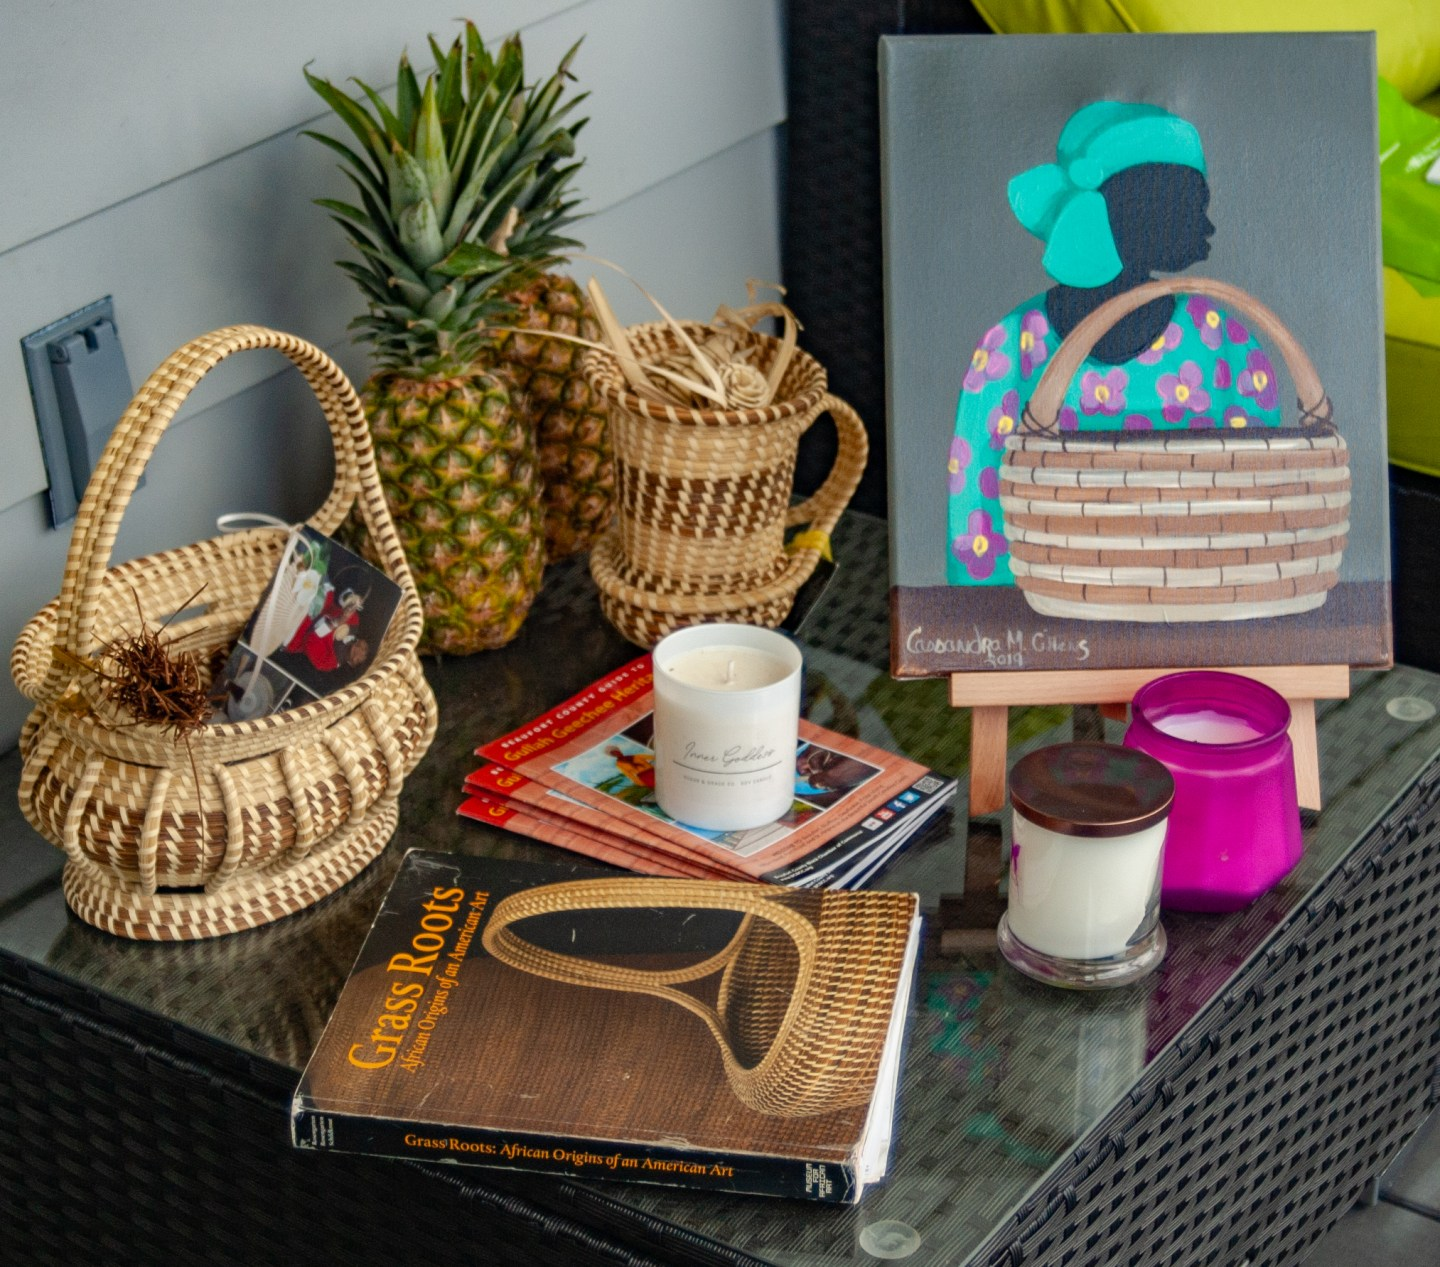 BBCC-2019_8-2 Gullah Heritage Through Design: Home Decor in Beaufort, SC